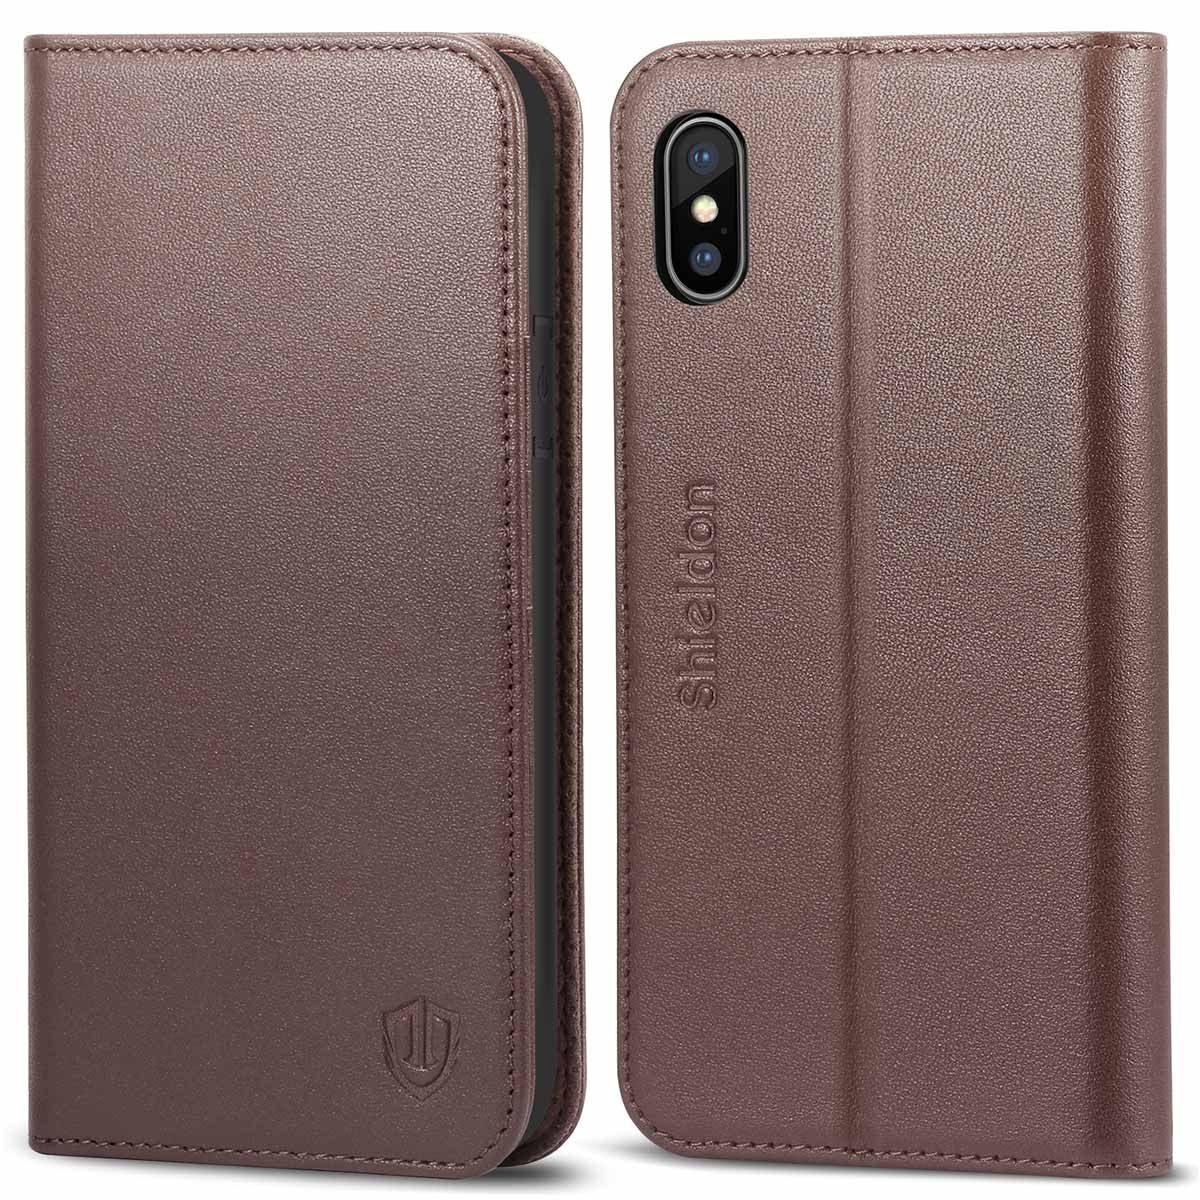 reputable site 634b6 60d7d SHIELDON iPhone X Genuine Leather Flip Cover, Kickstand, Magnetic Closure